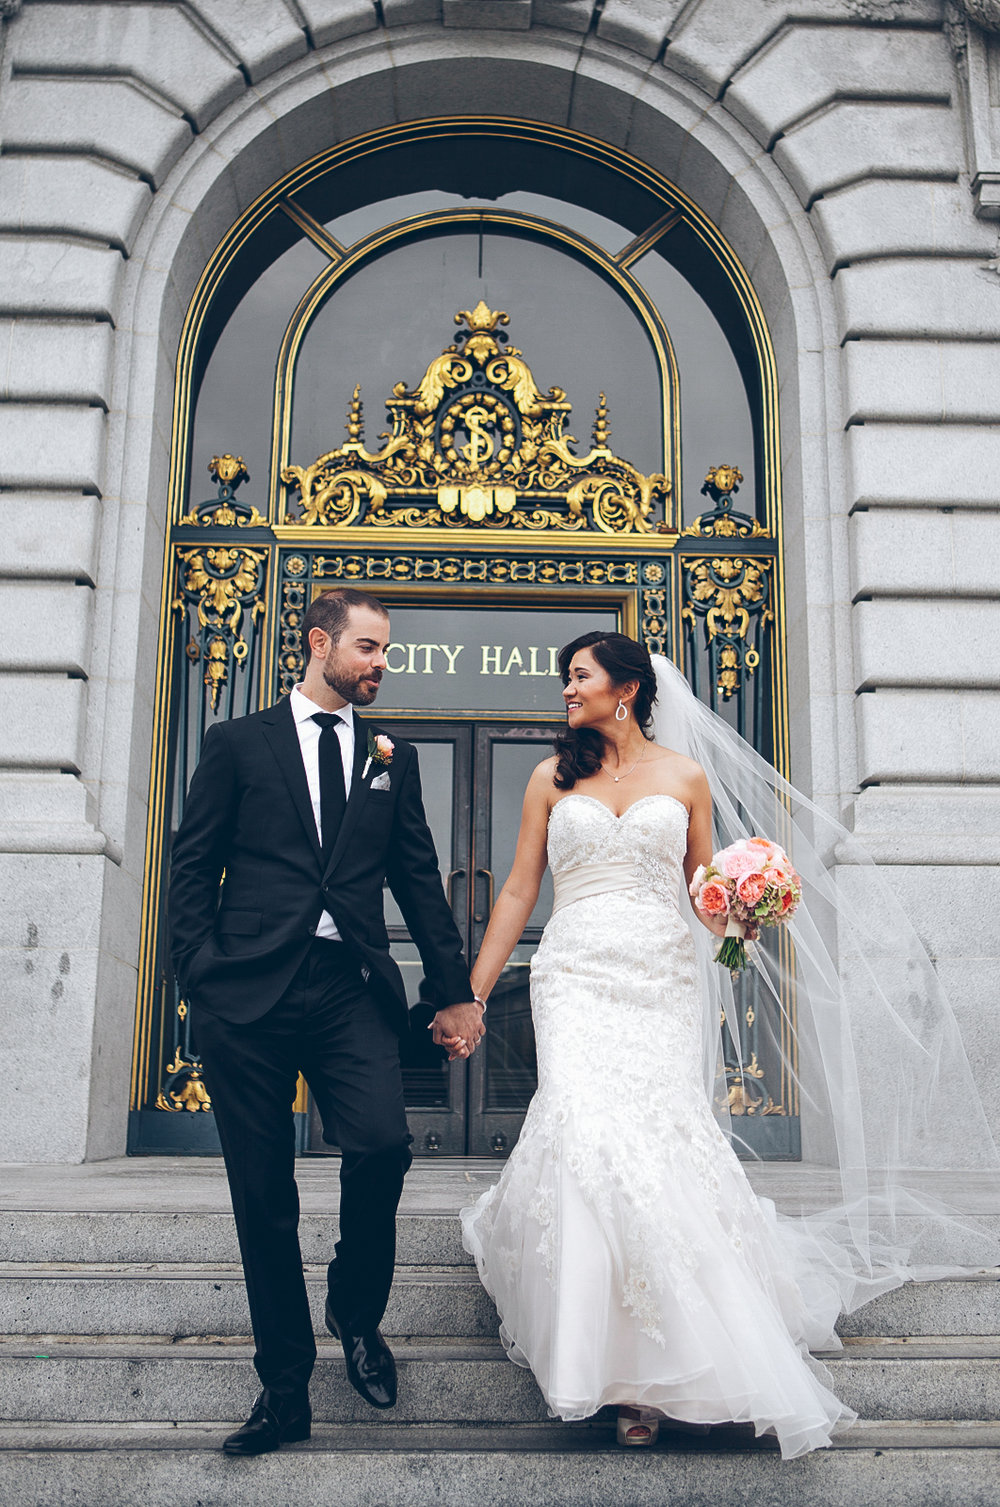 San_francisco_city_hall_wedding_photography_meegan_travis_ebony_siovhan_bokeh_photography_57.jpg